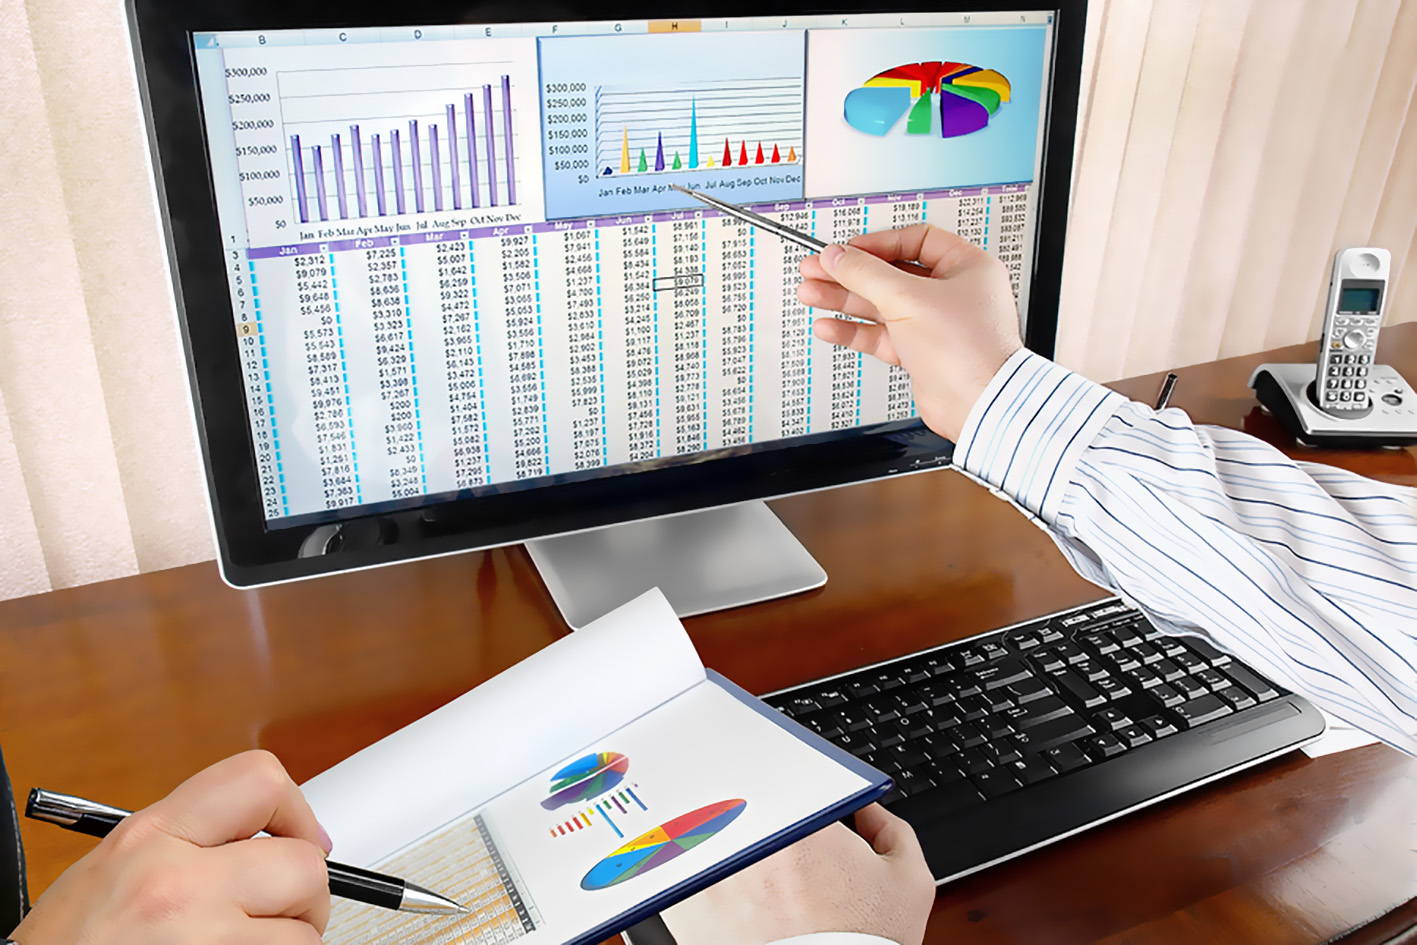 Businesspeople Analyzing Financial Data and Charts on Computer Screen in the Office